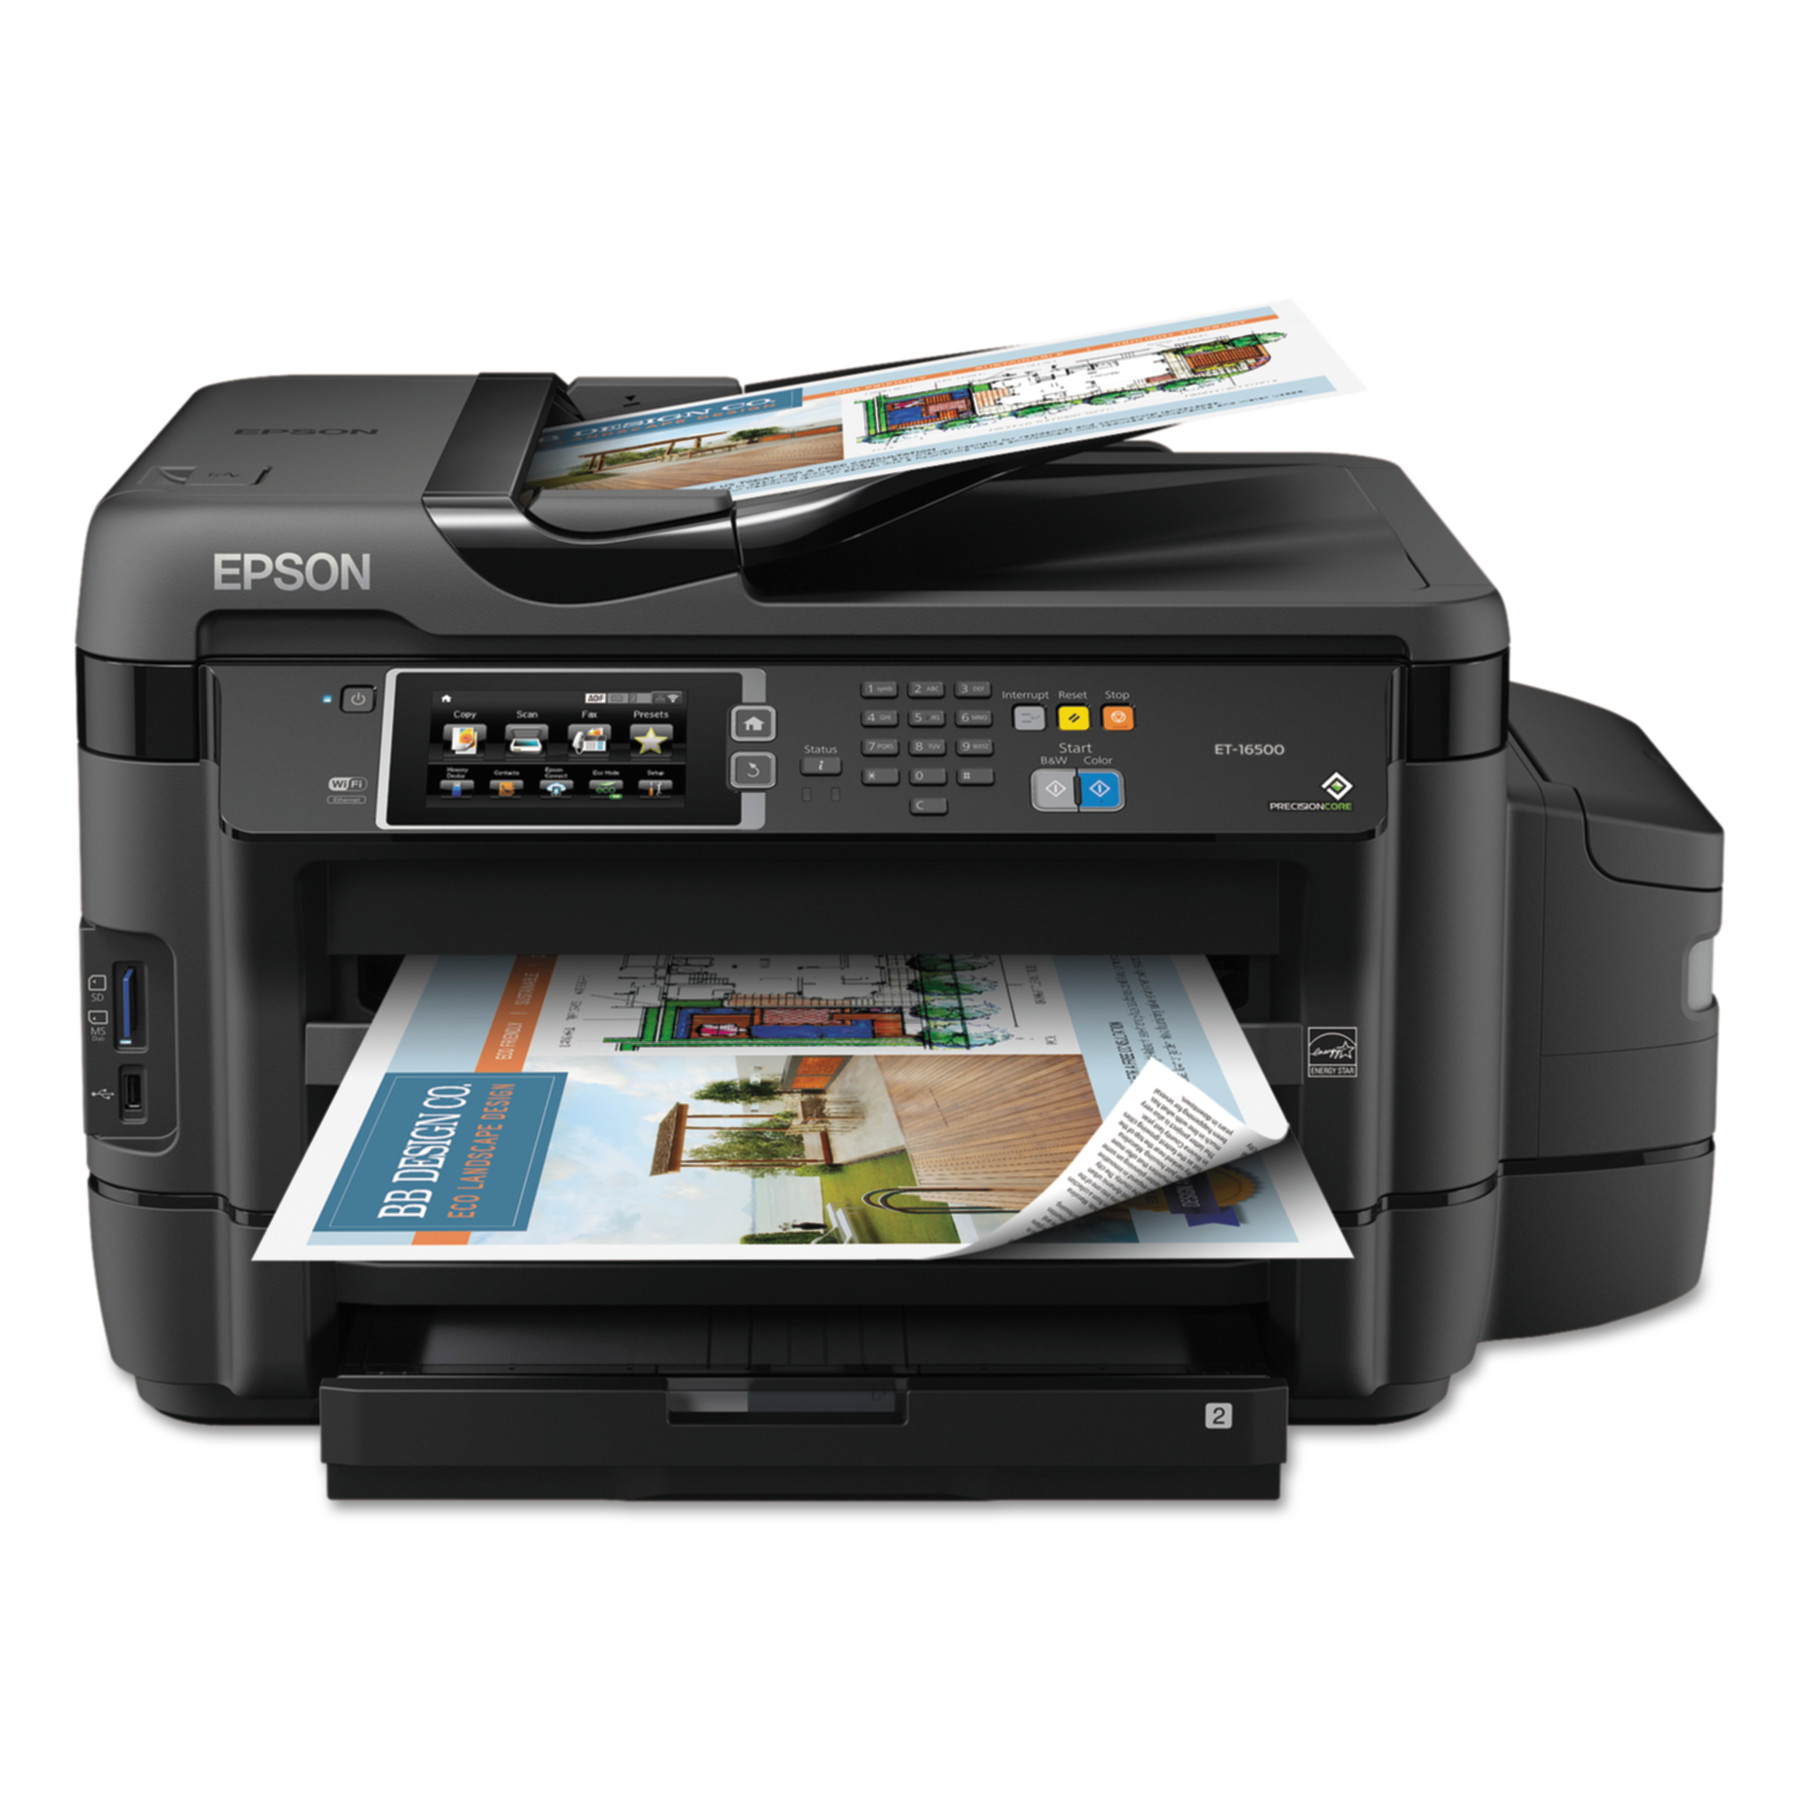 Epson WorkForce ET-16500 EcoTank Wide Format Wireless All-in-One Printer